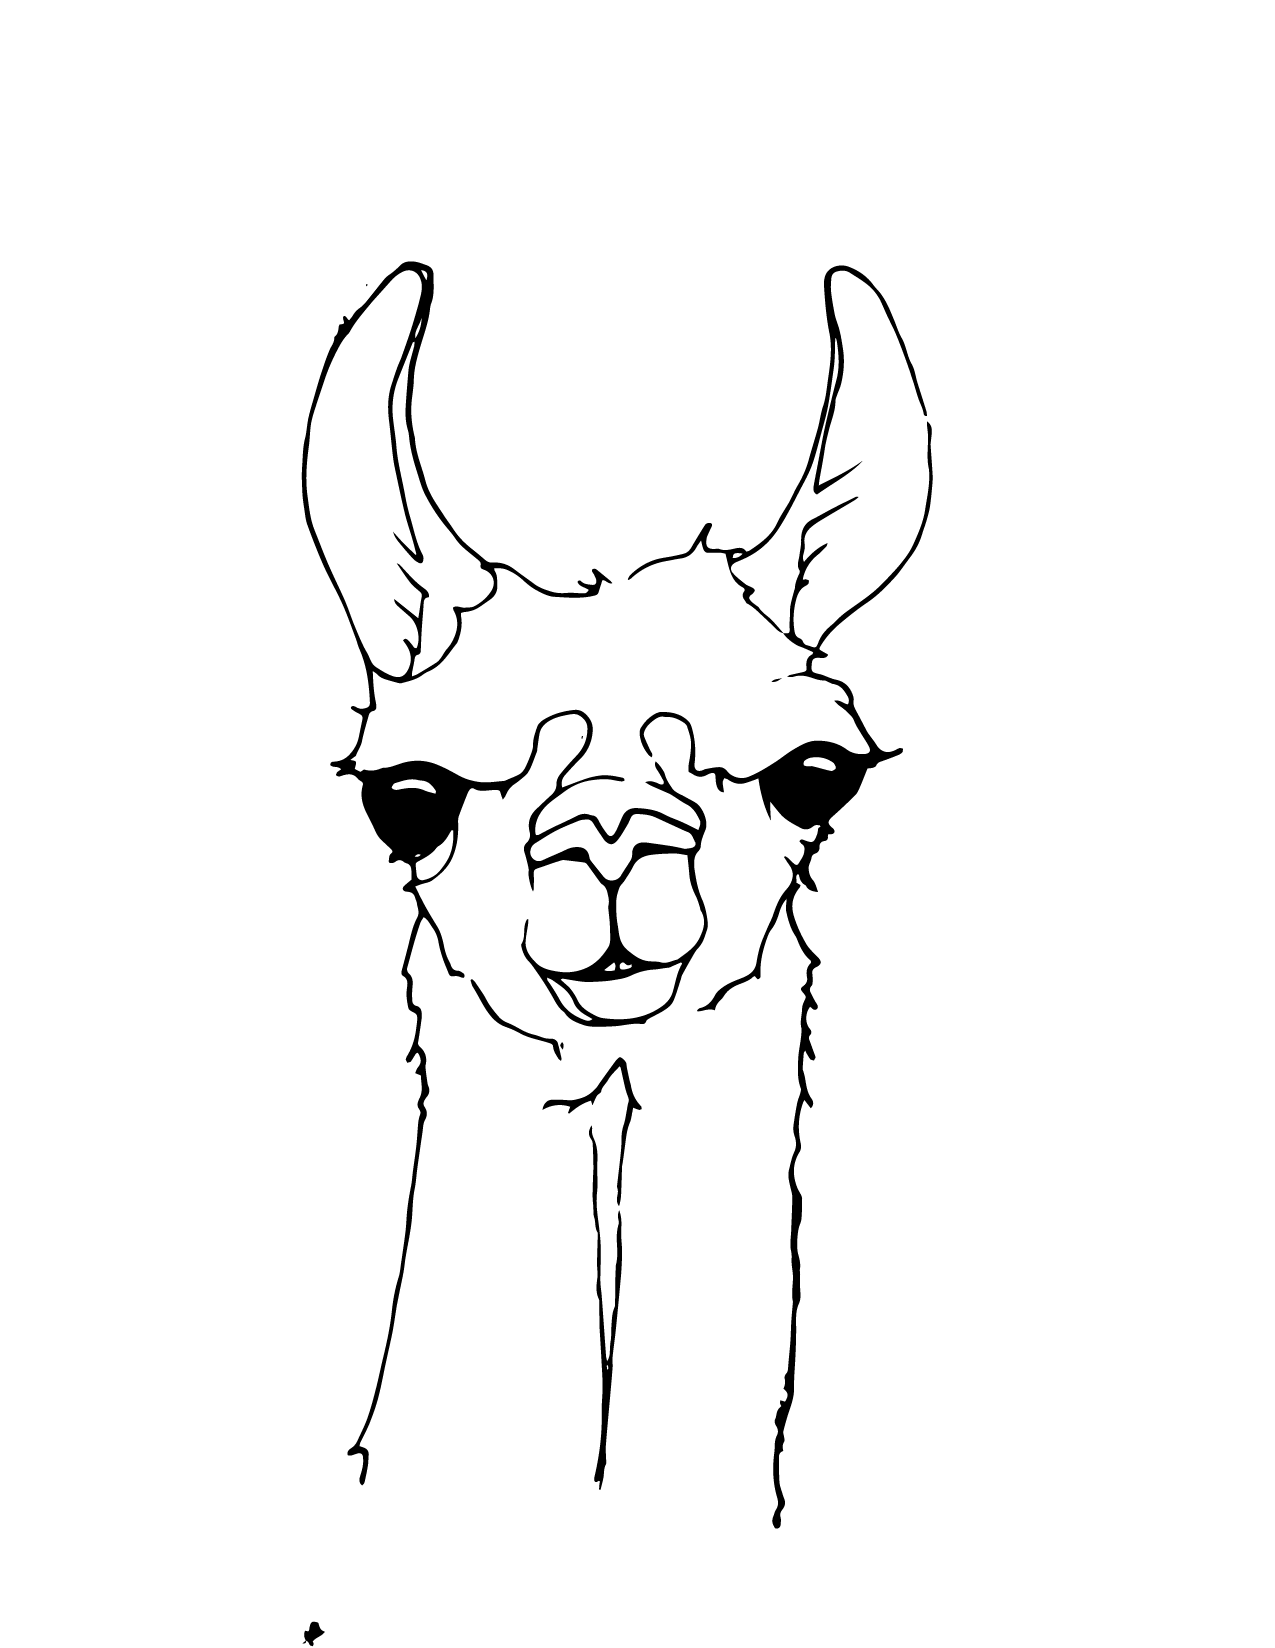 llama coloring pages llama coloring pages to download and print for free llama pages coloring